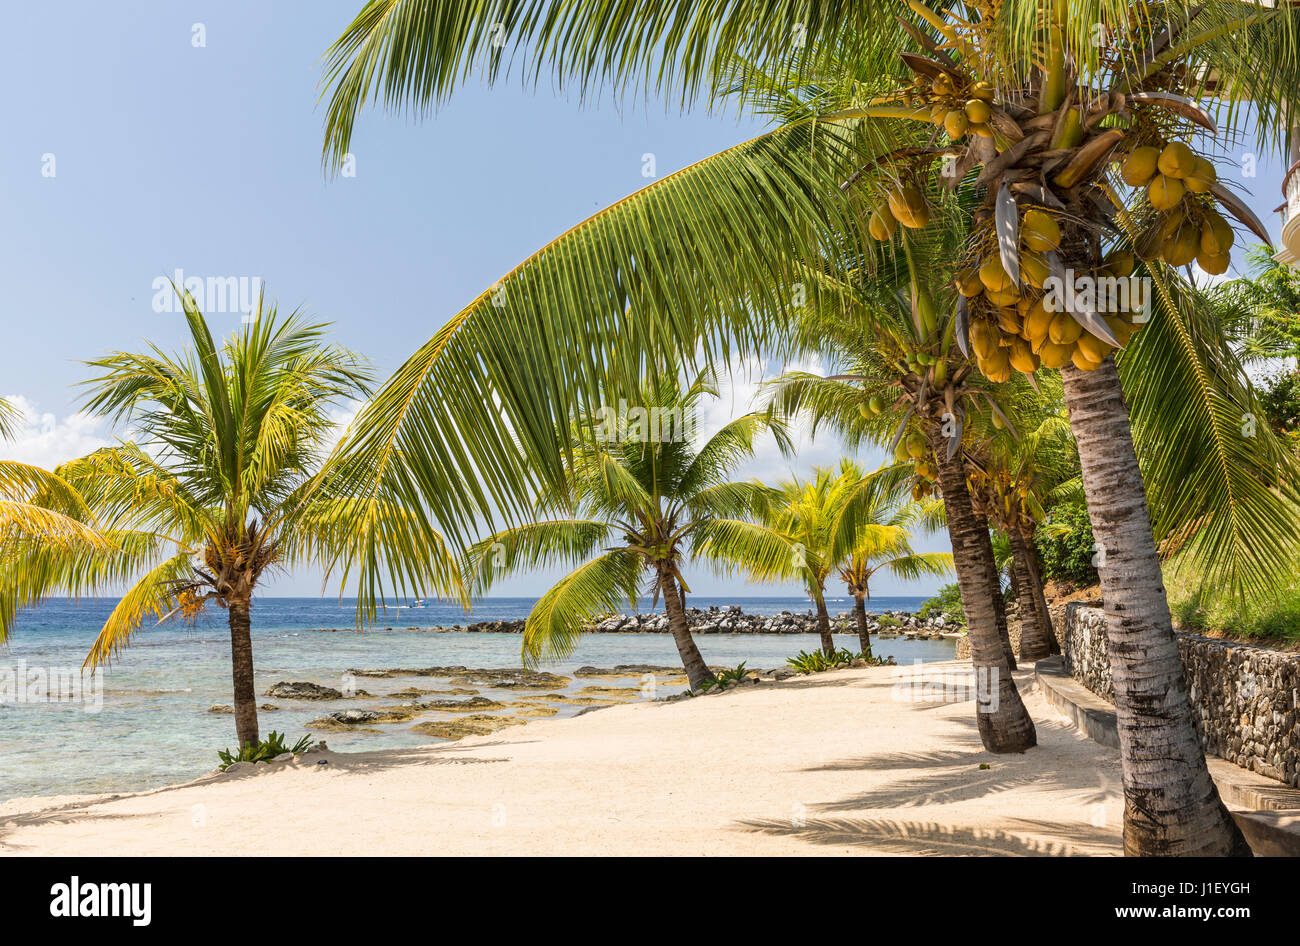 Coconut palm trees line the beautiful sandy beach and coral reef at Lighthouse Point near the Meridian Resort in Stock Photo